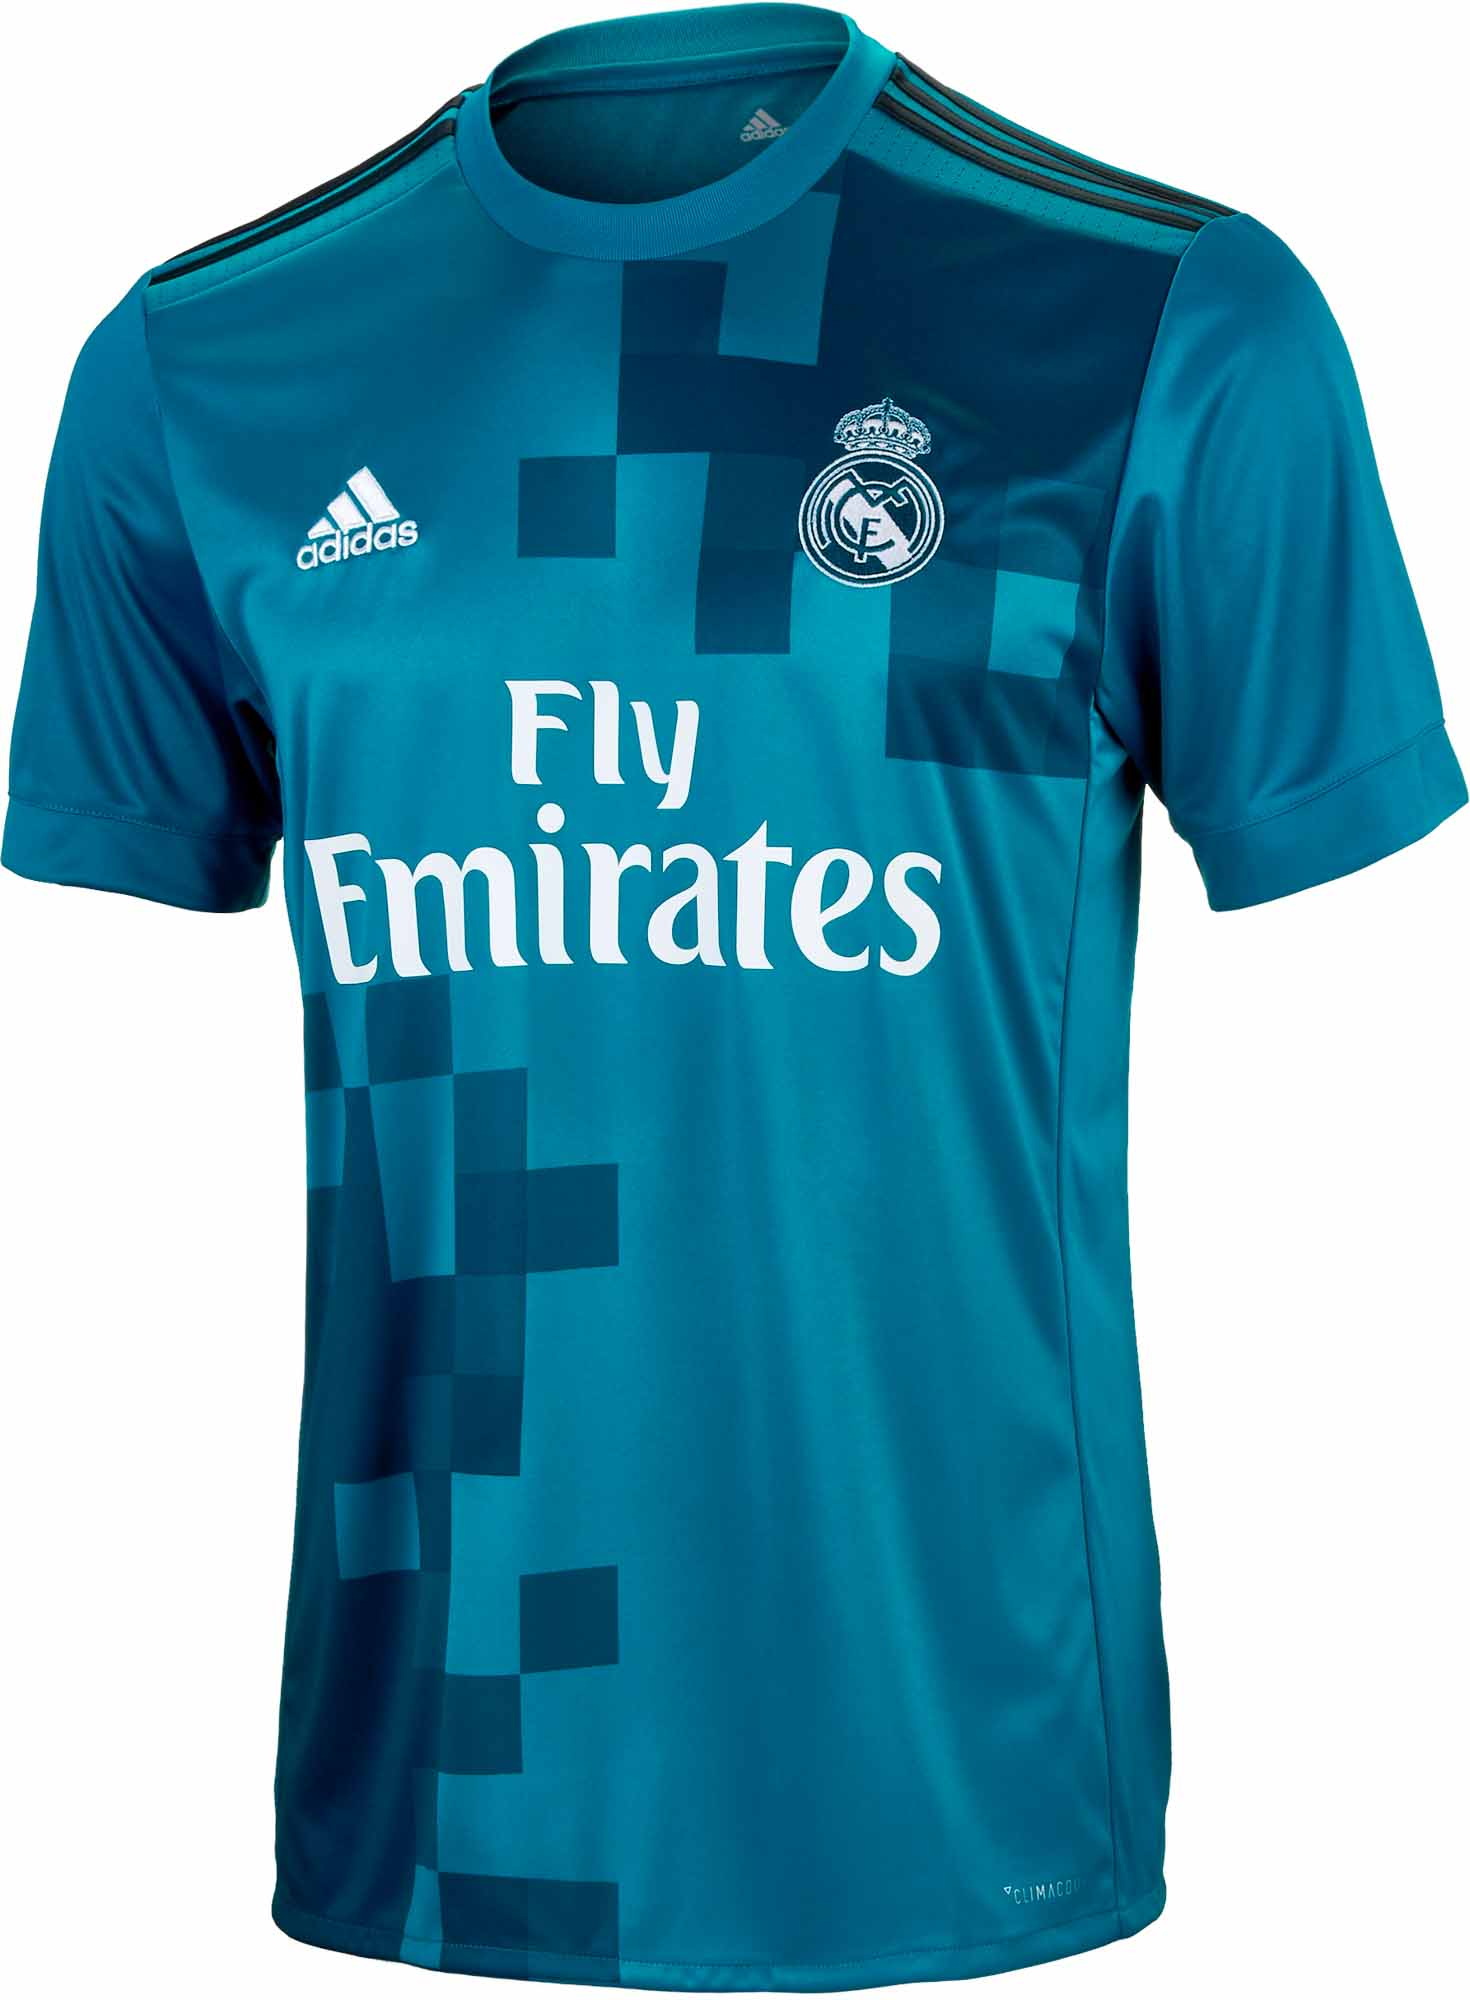 online store 9fa94 0e92c adidas Real Madrid 3rd Jersey - 2017/18 Soccer Jerseys